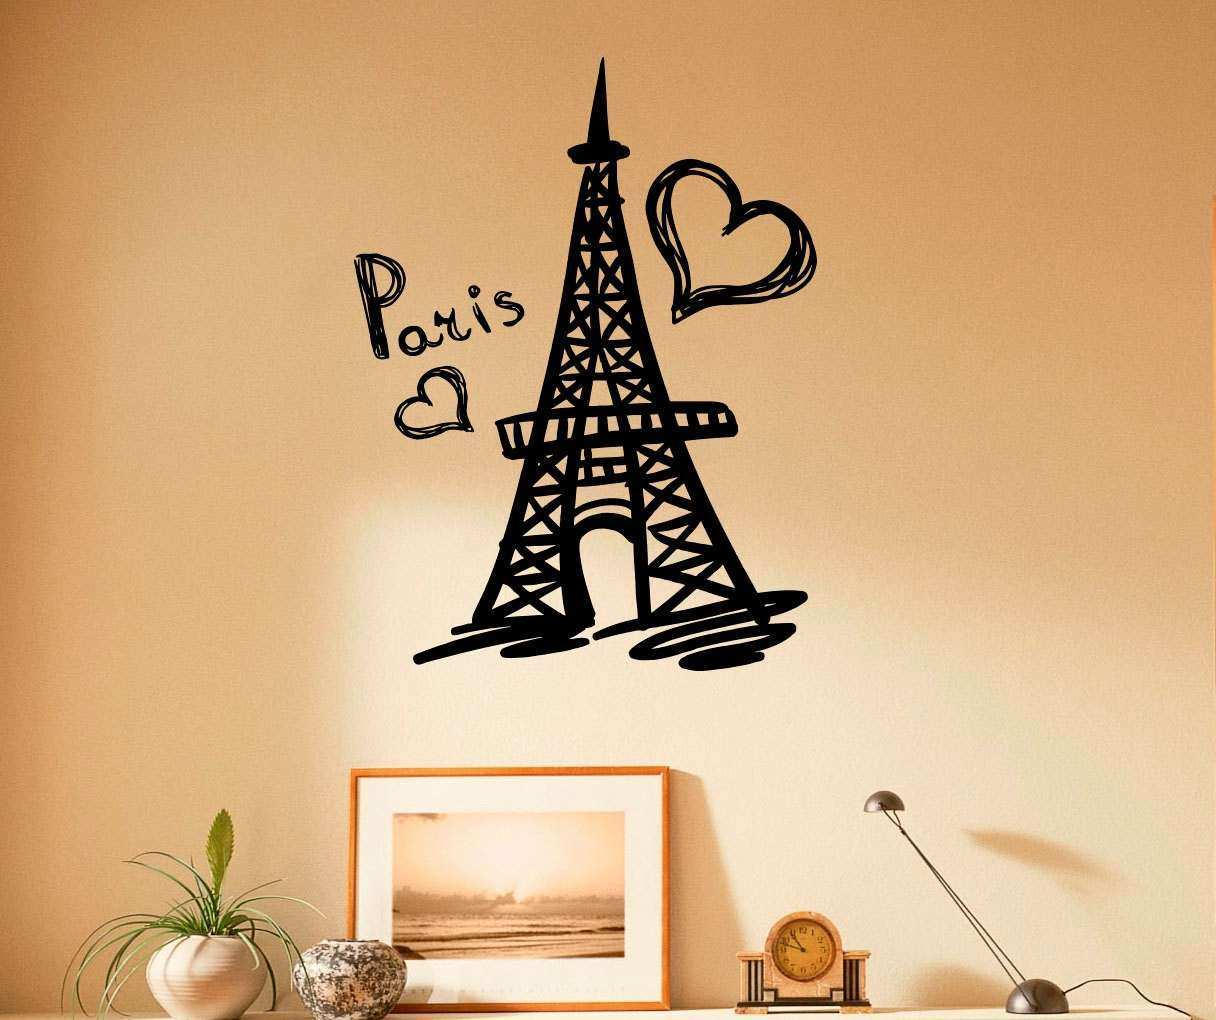 Paris Wall Decor Elegant Paris Eiffel tower Wall Decal Vinyl ...